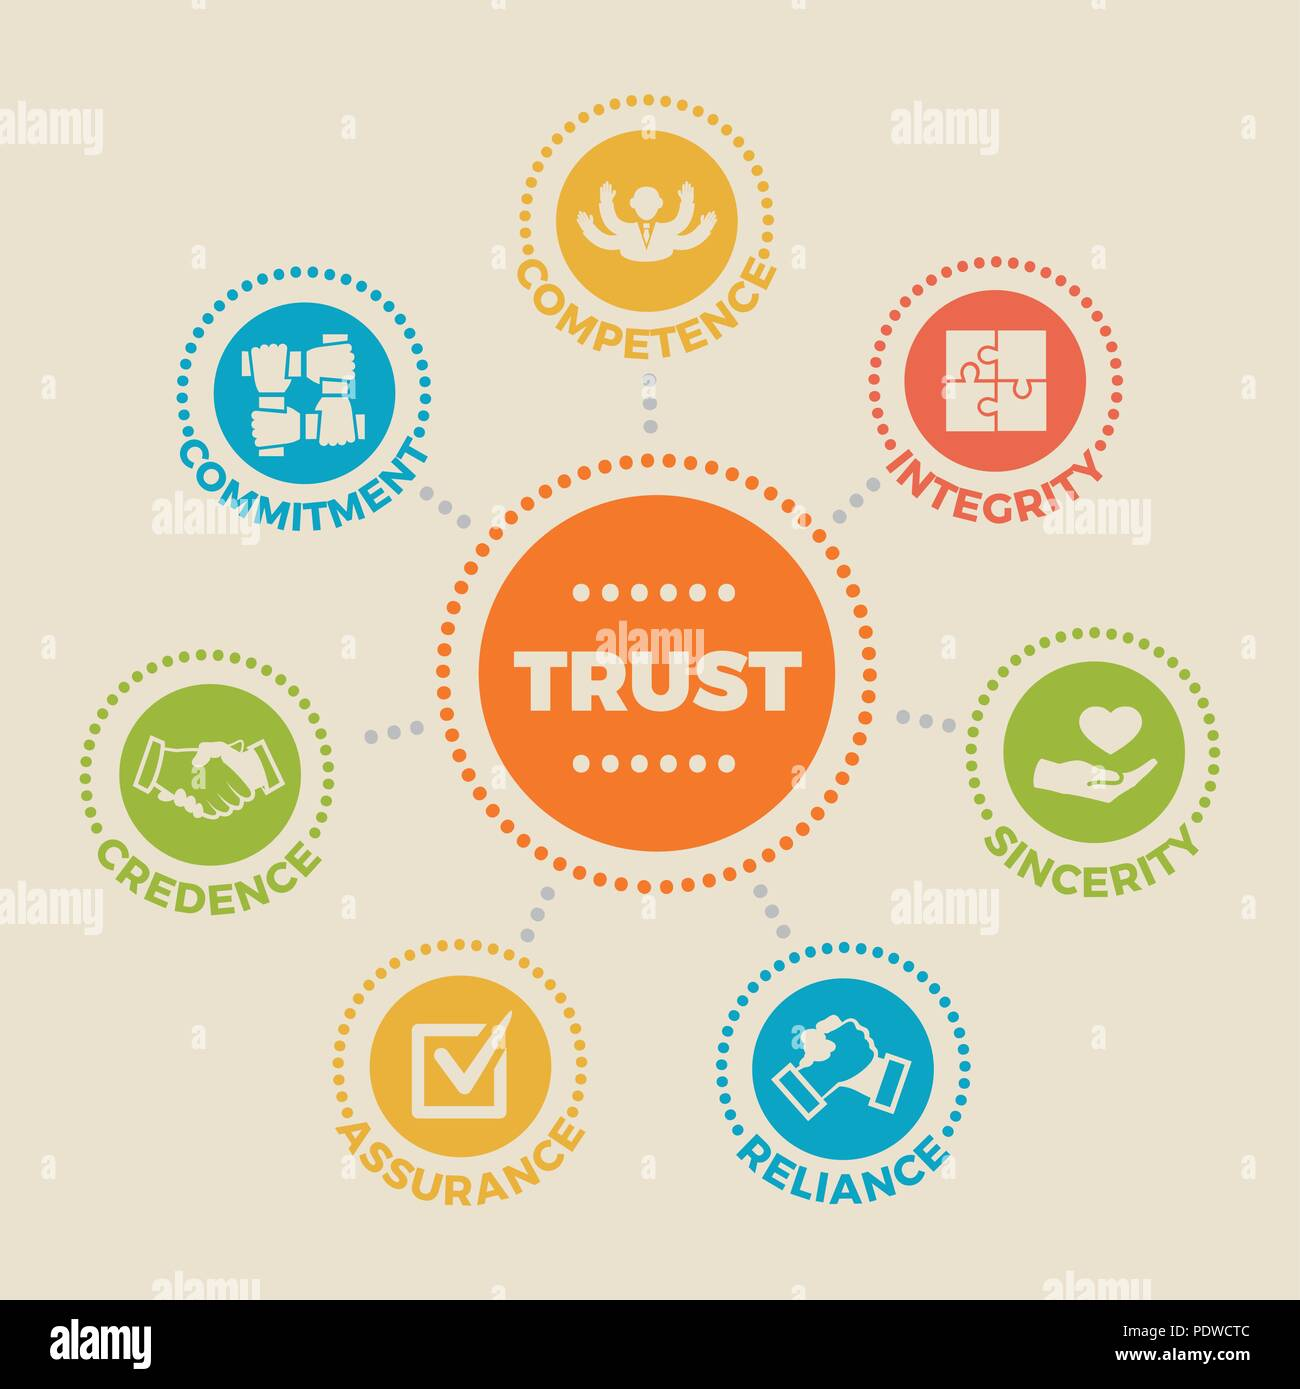 TRUST. Concept with icons and signs - Stock Image